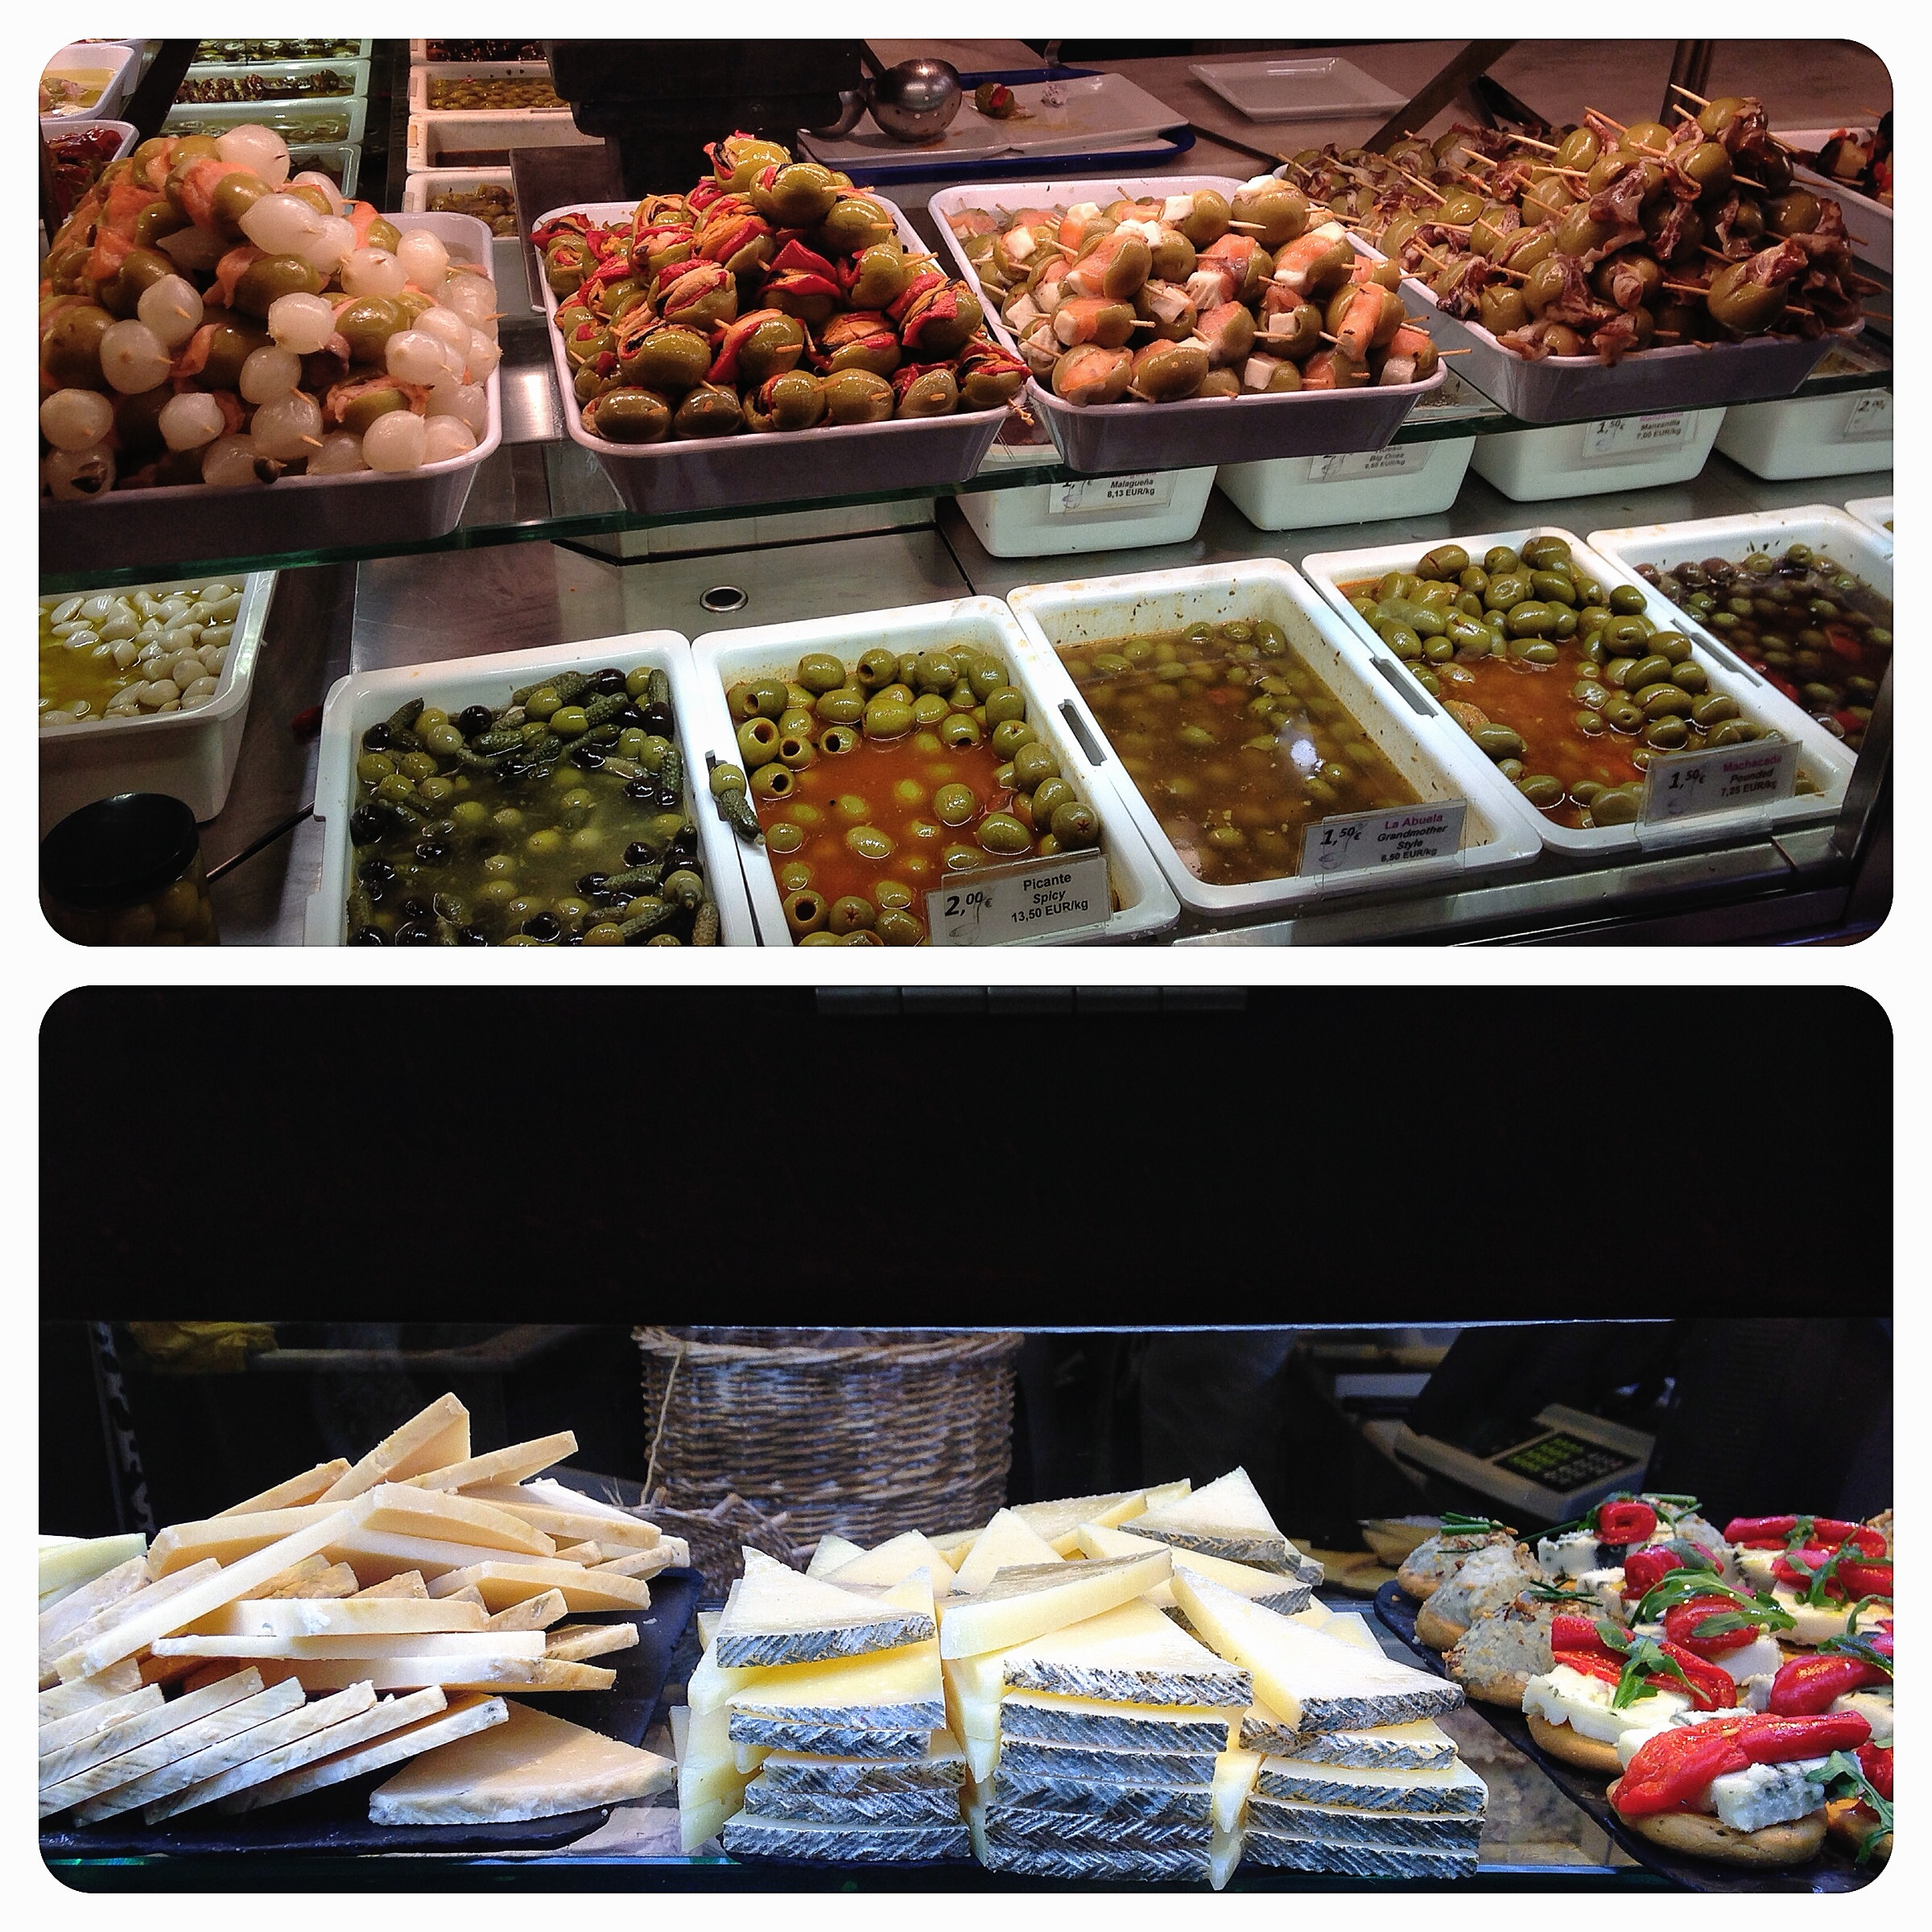 Olives and manchego at the Mercado San Miguel.